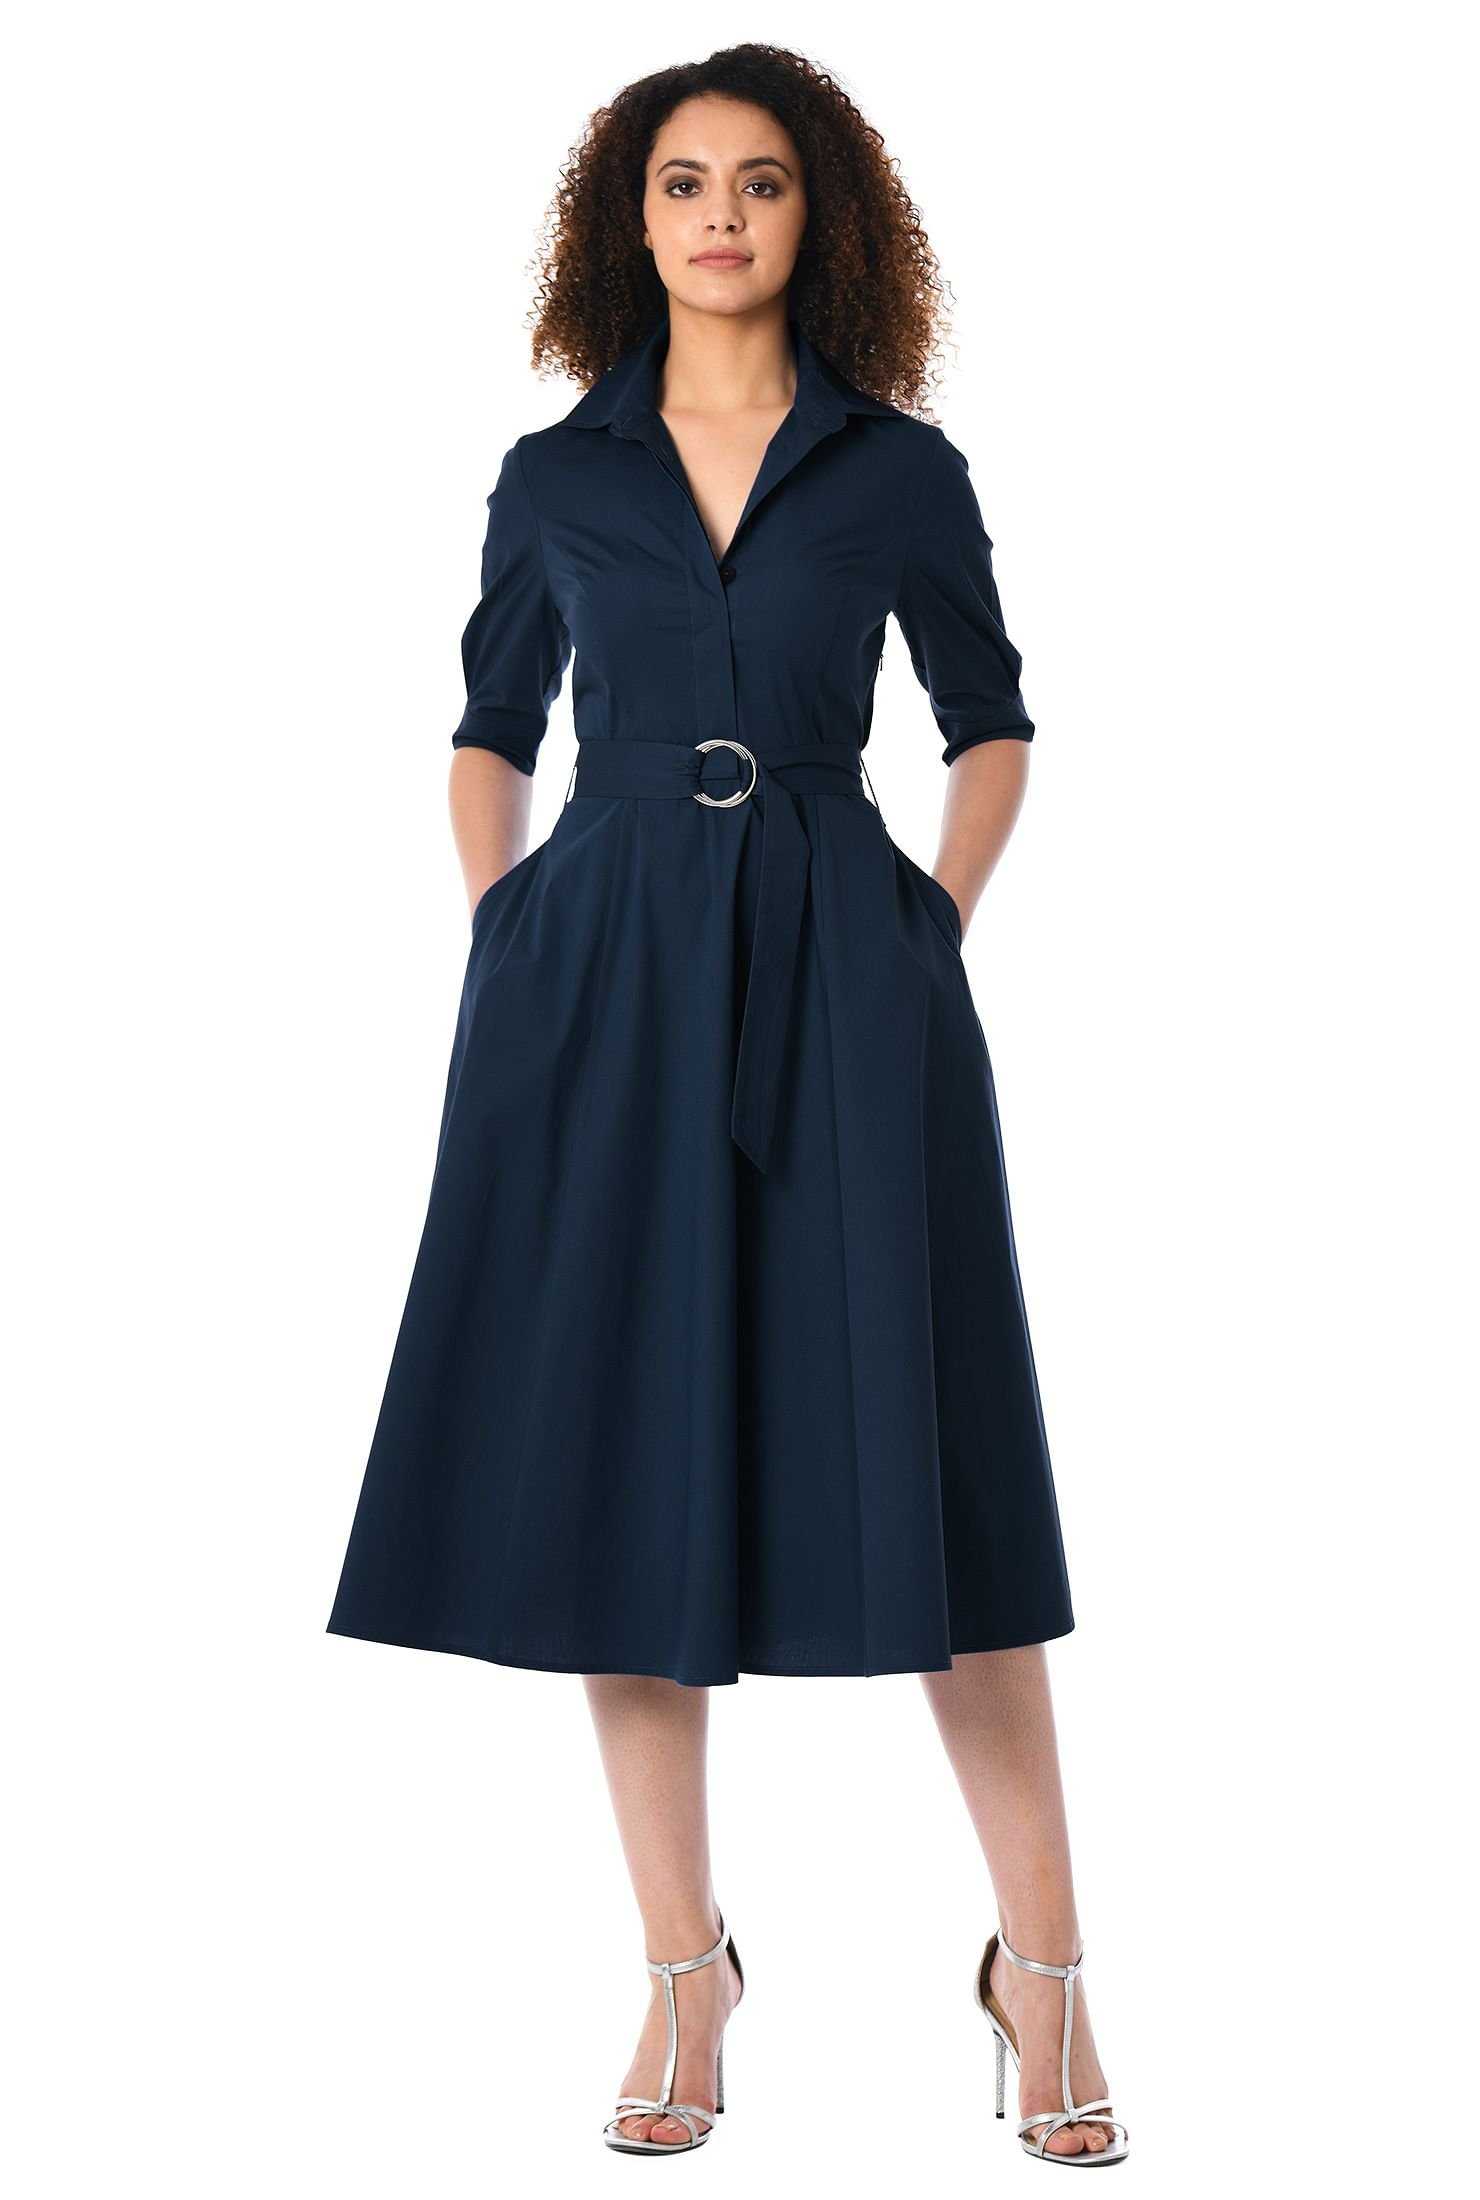 af1cd7288ad ... Midi Shirt Dress With Pocket. Belted Dresses Cotton Spandex Deep Navy  Elbow Length Sleeve. Women S Fashion Clothing 0 36w And Custom